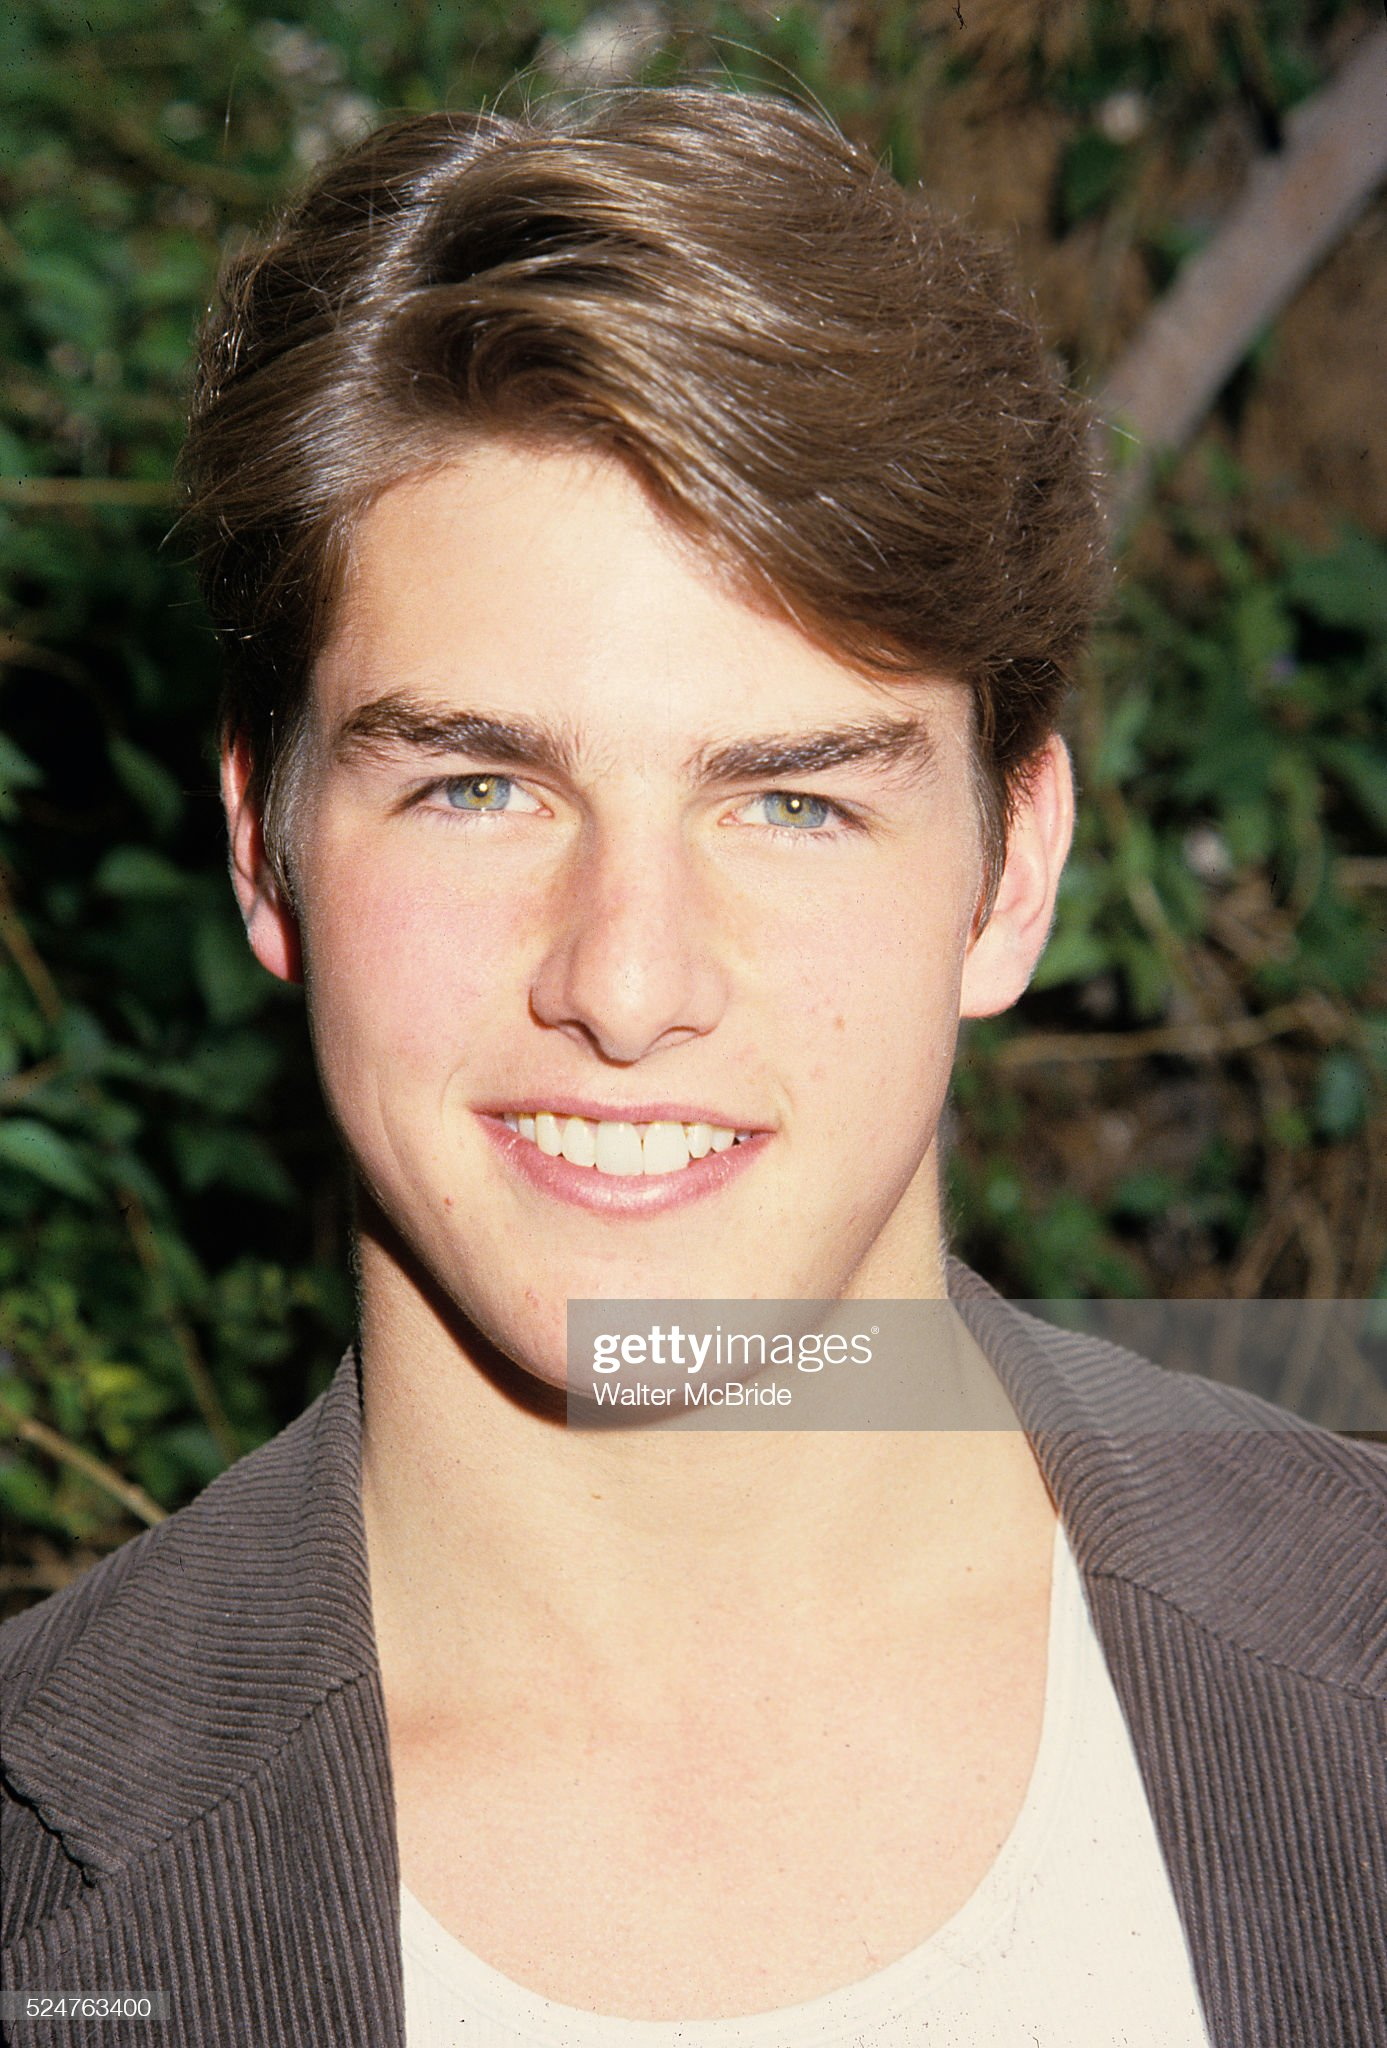 Tom Cruise (Galería de fotos) Tom-cruise-pictured-in-los-angeles-california-in-1983-picture-id524763400?s=2048x2048